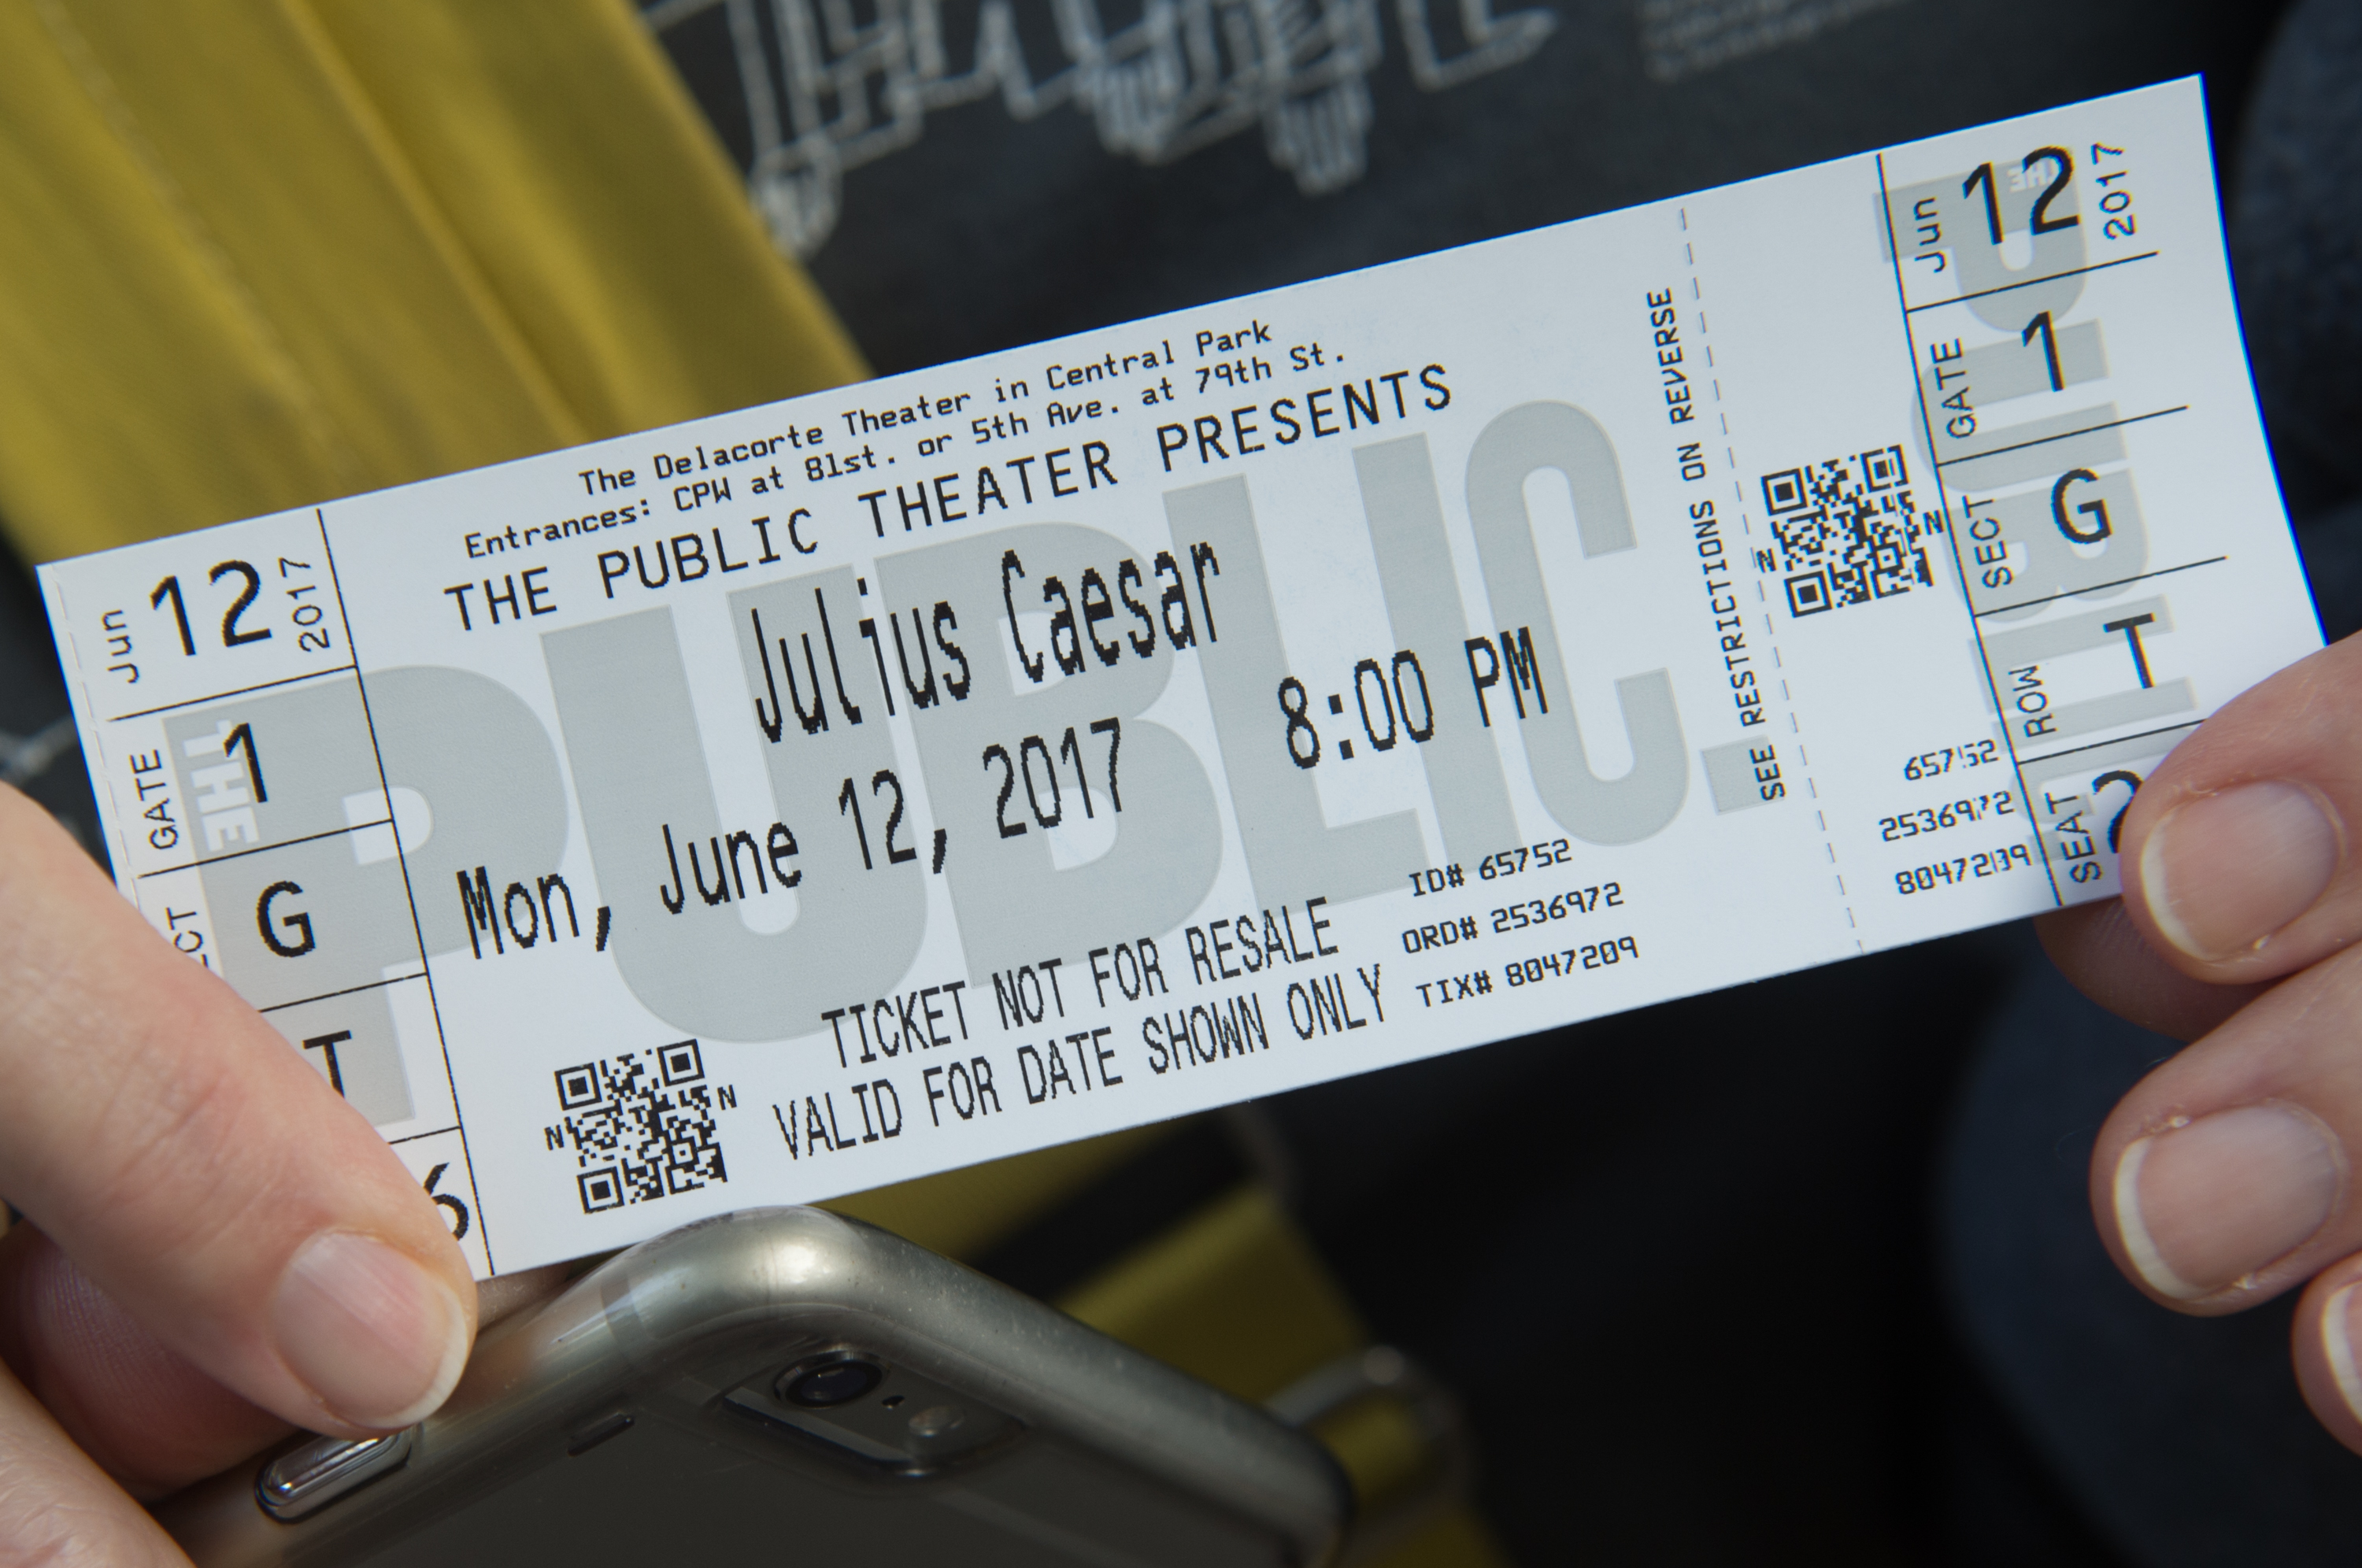 A woman holds her ticket to opening night of Shakespeare in the Park's production of Julius Caesar at Central Park's Delacorte Theater on June 12, 2017 in New York.